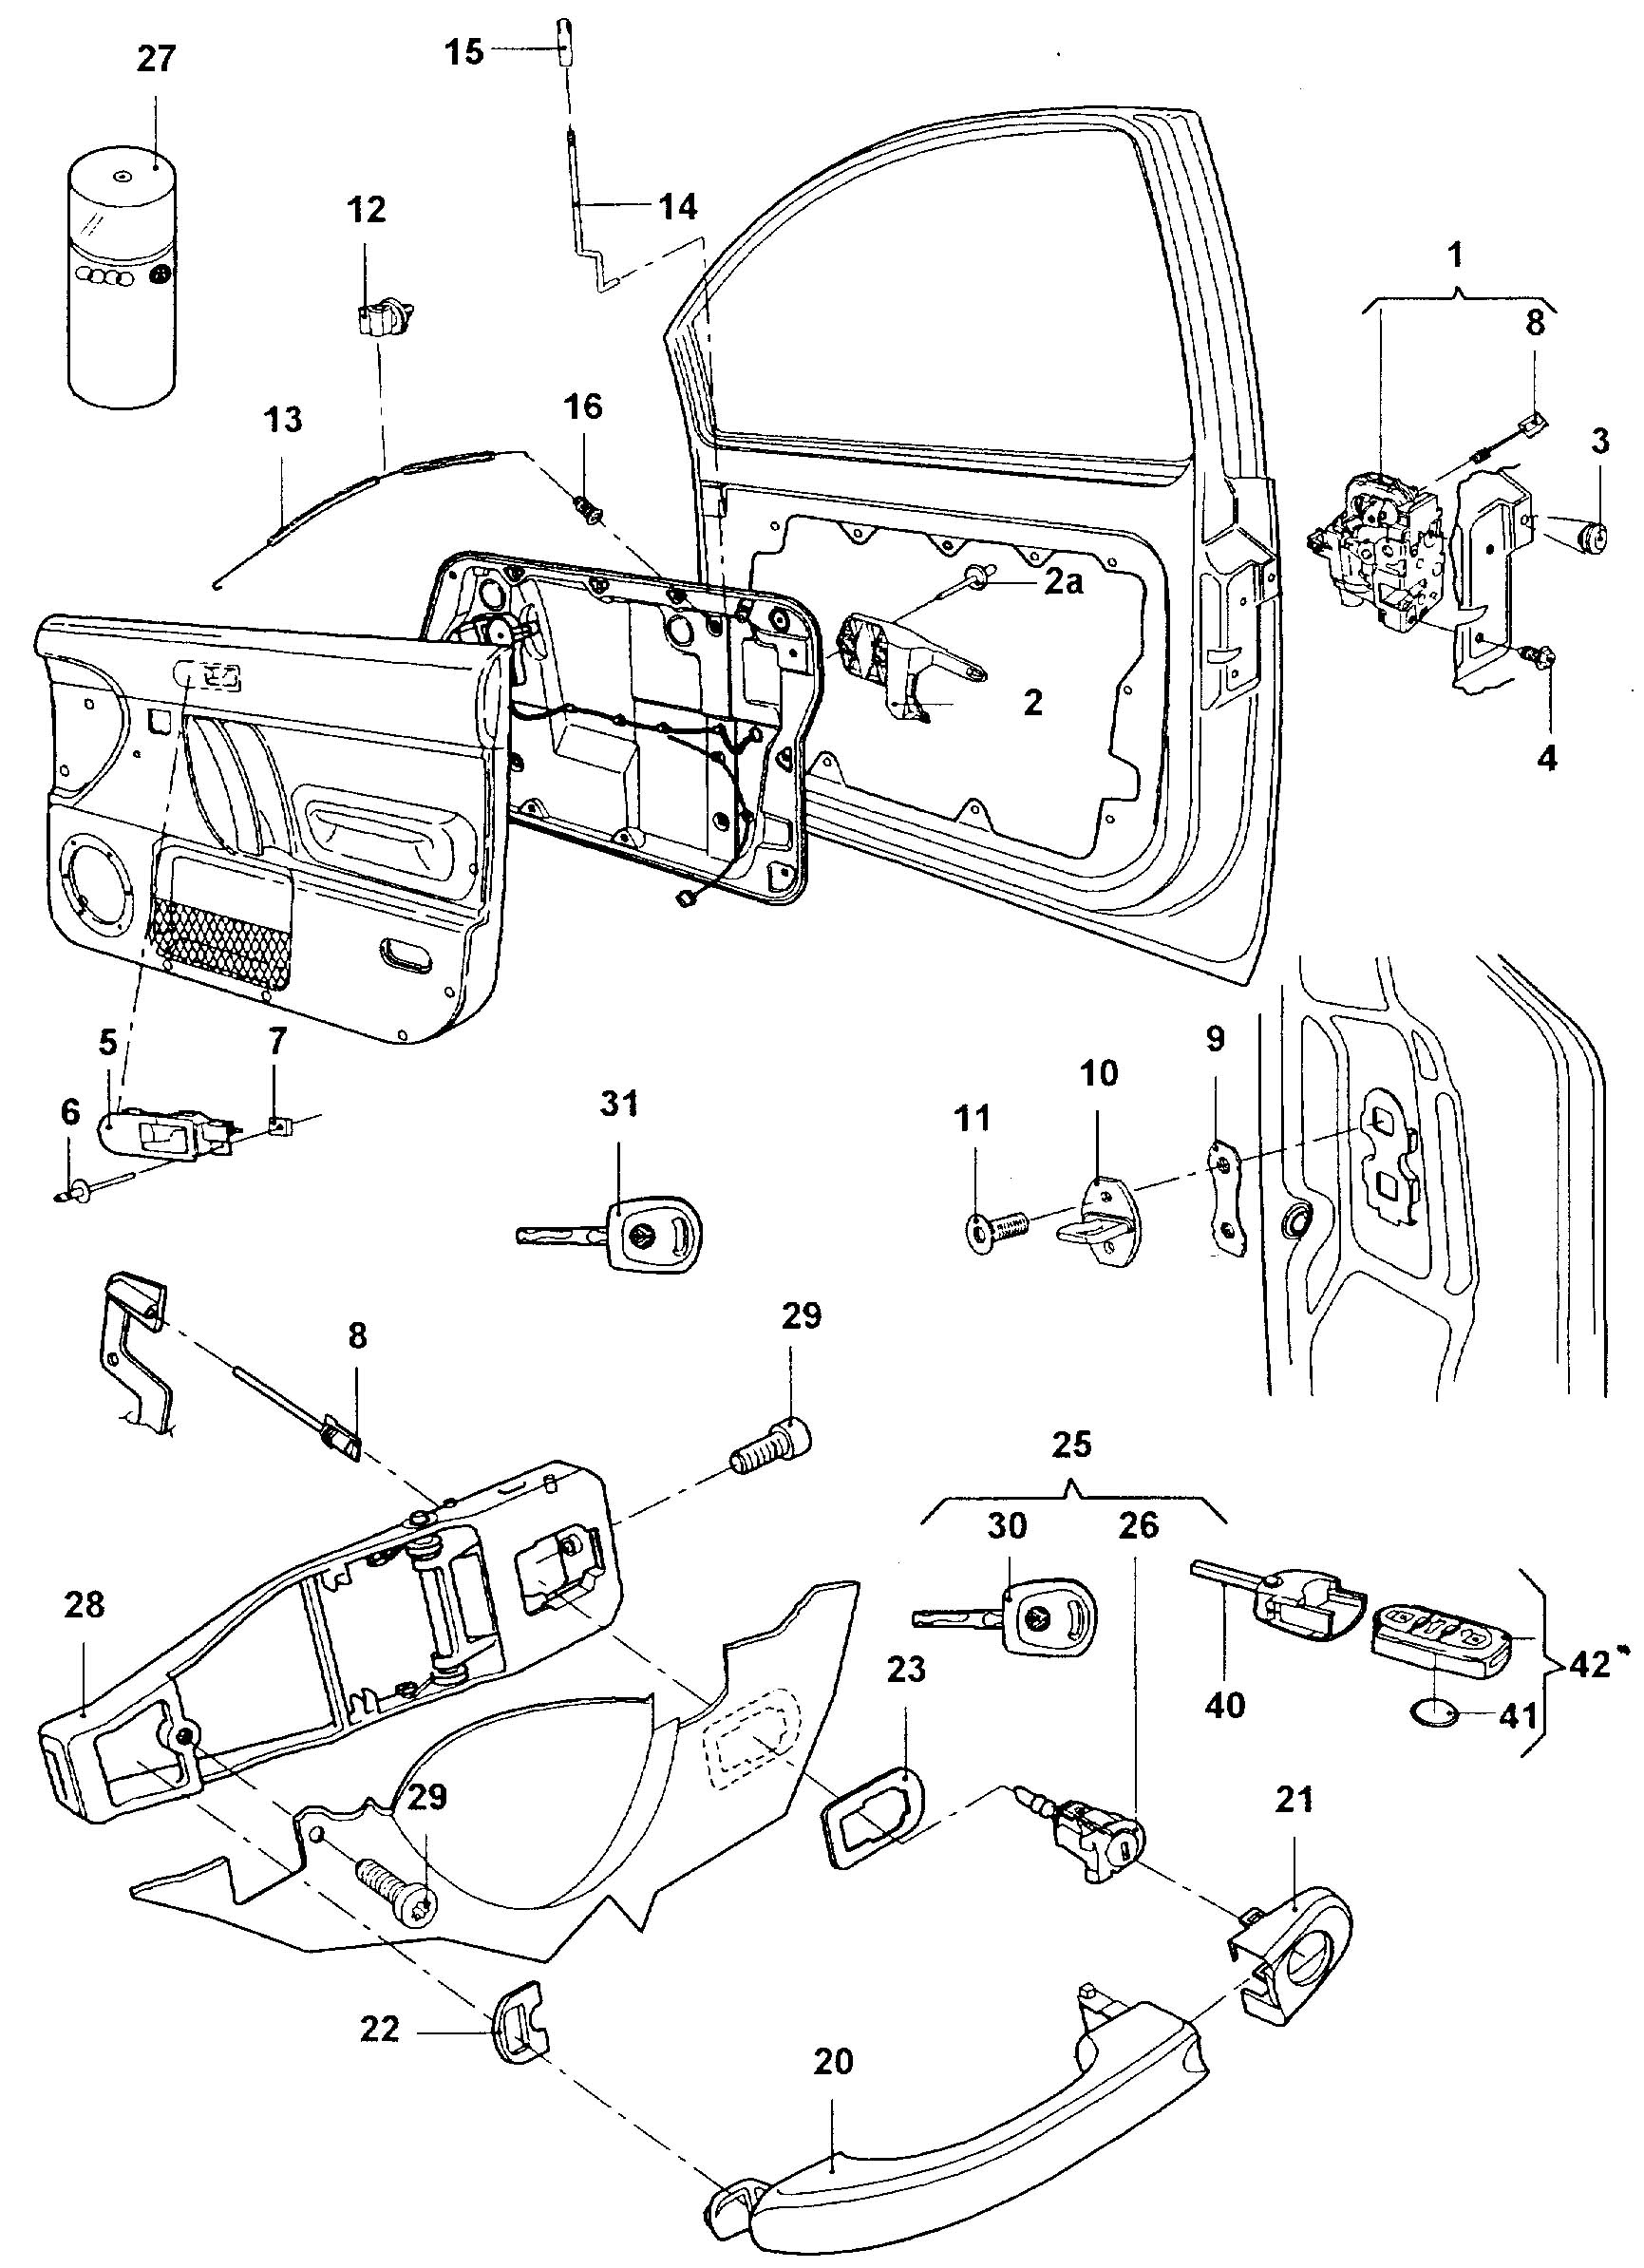 Volkswagen Beetle Door Handle Diagram Volkswagen Auto